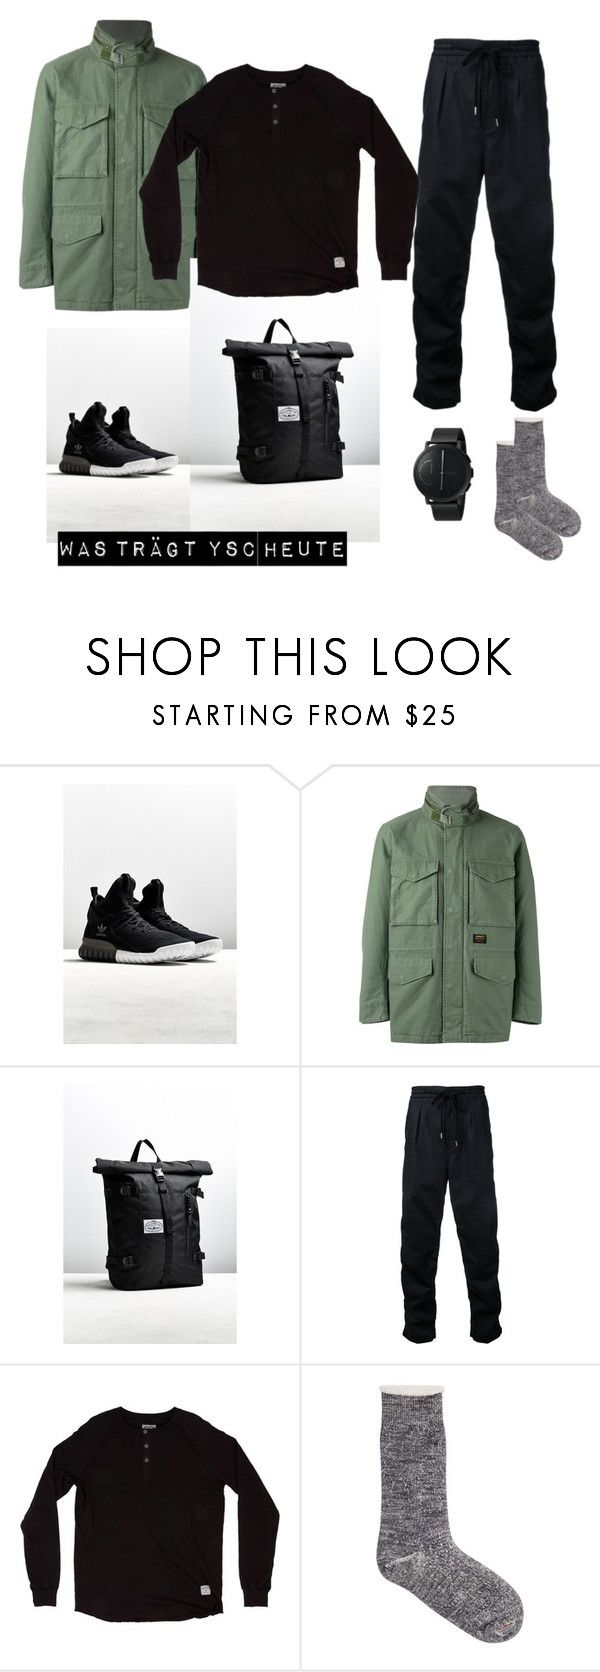 """""""Untitled #19"""" by kathywant ❤ liked on Polyvore featuring adidas, Carhartt, Poler, monkey time, Iron & Resin, Ro To To, Skagen, men's fashion and menswear"""